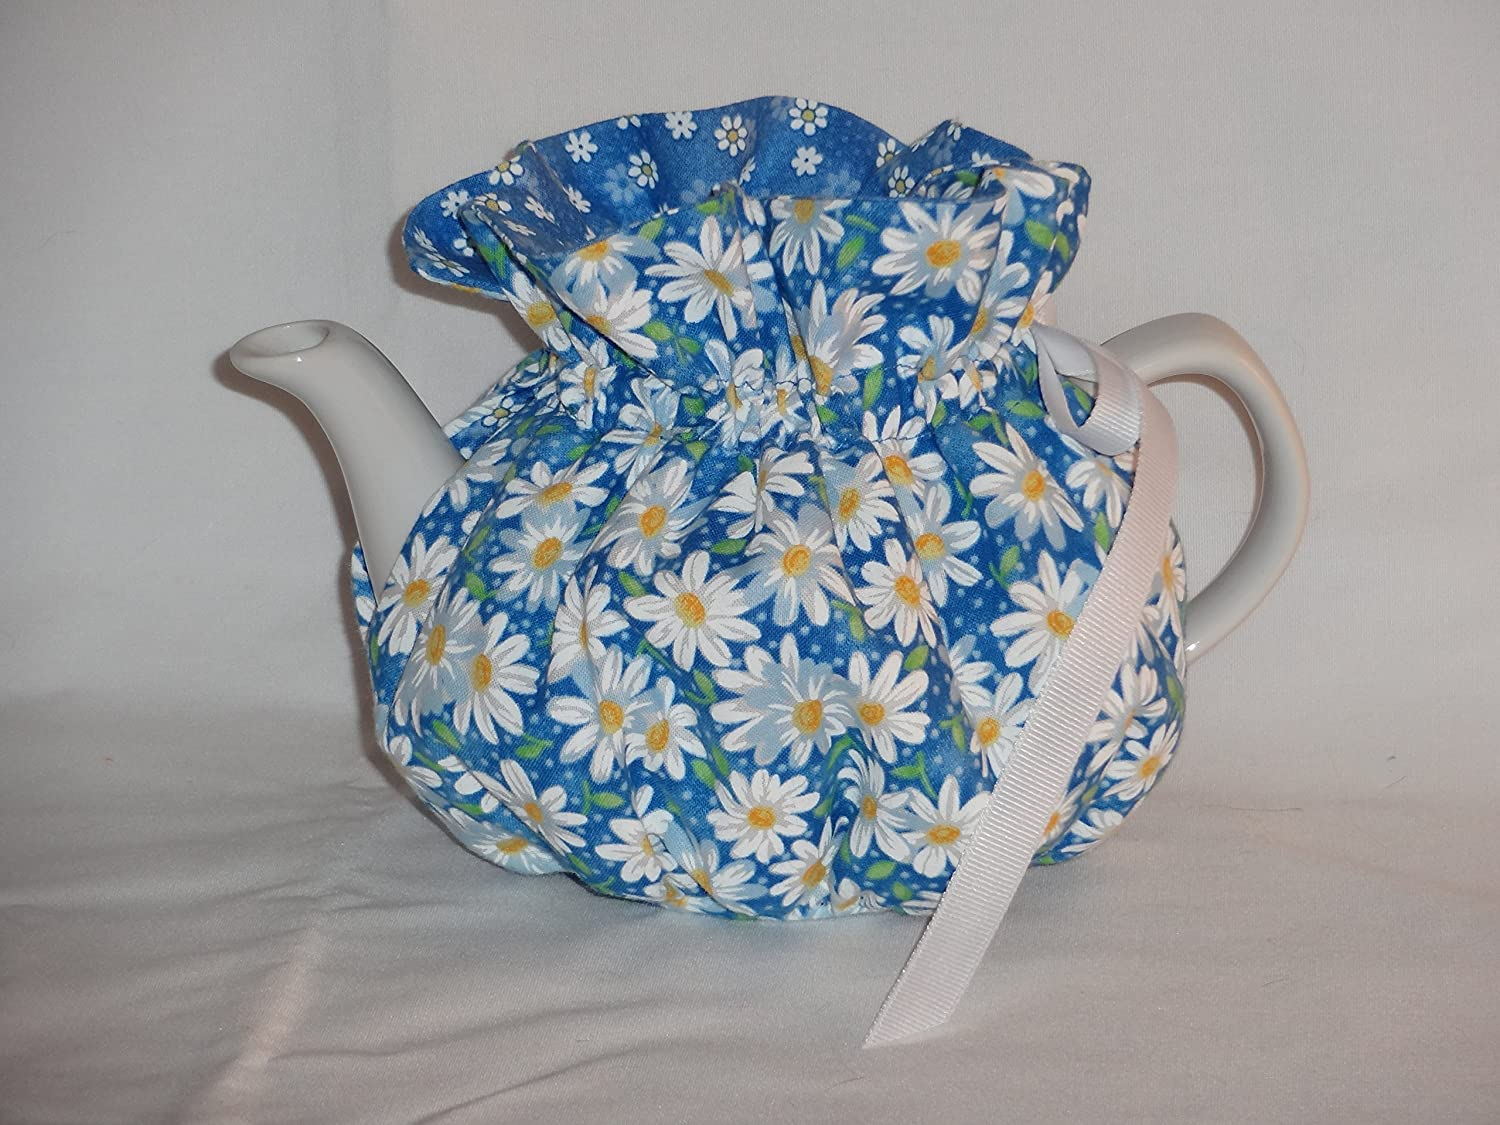 2 Cup White Daisies on Blue Reversible Tea Pot Cozy 91kEDR9CUyL